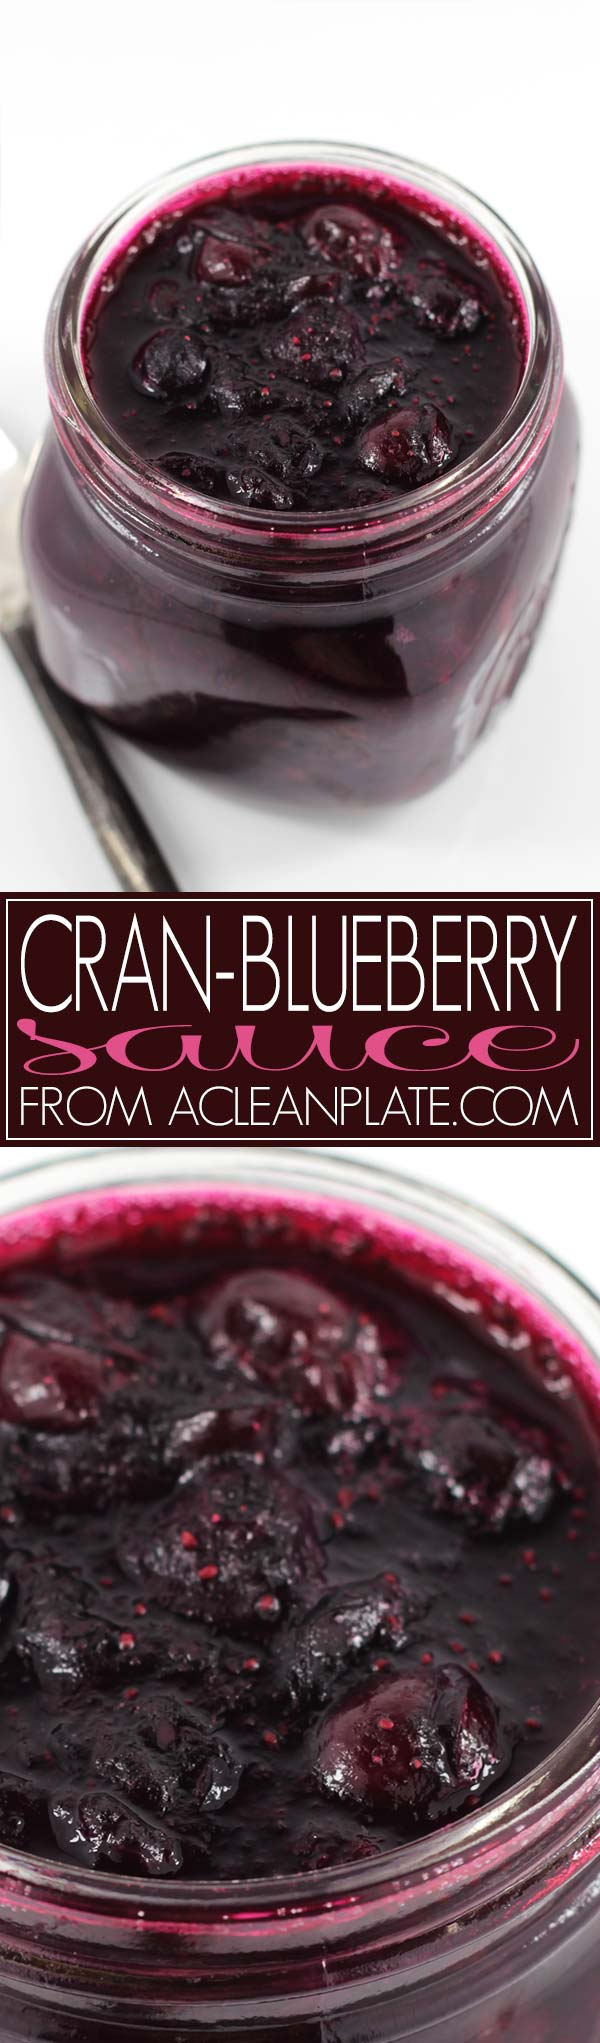 Blueberry Cranberry Sauce recipe from acleanplate.com